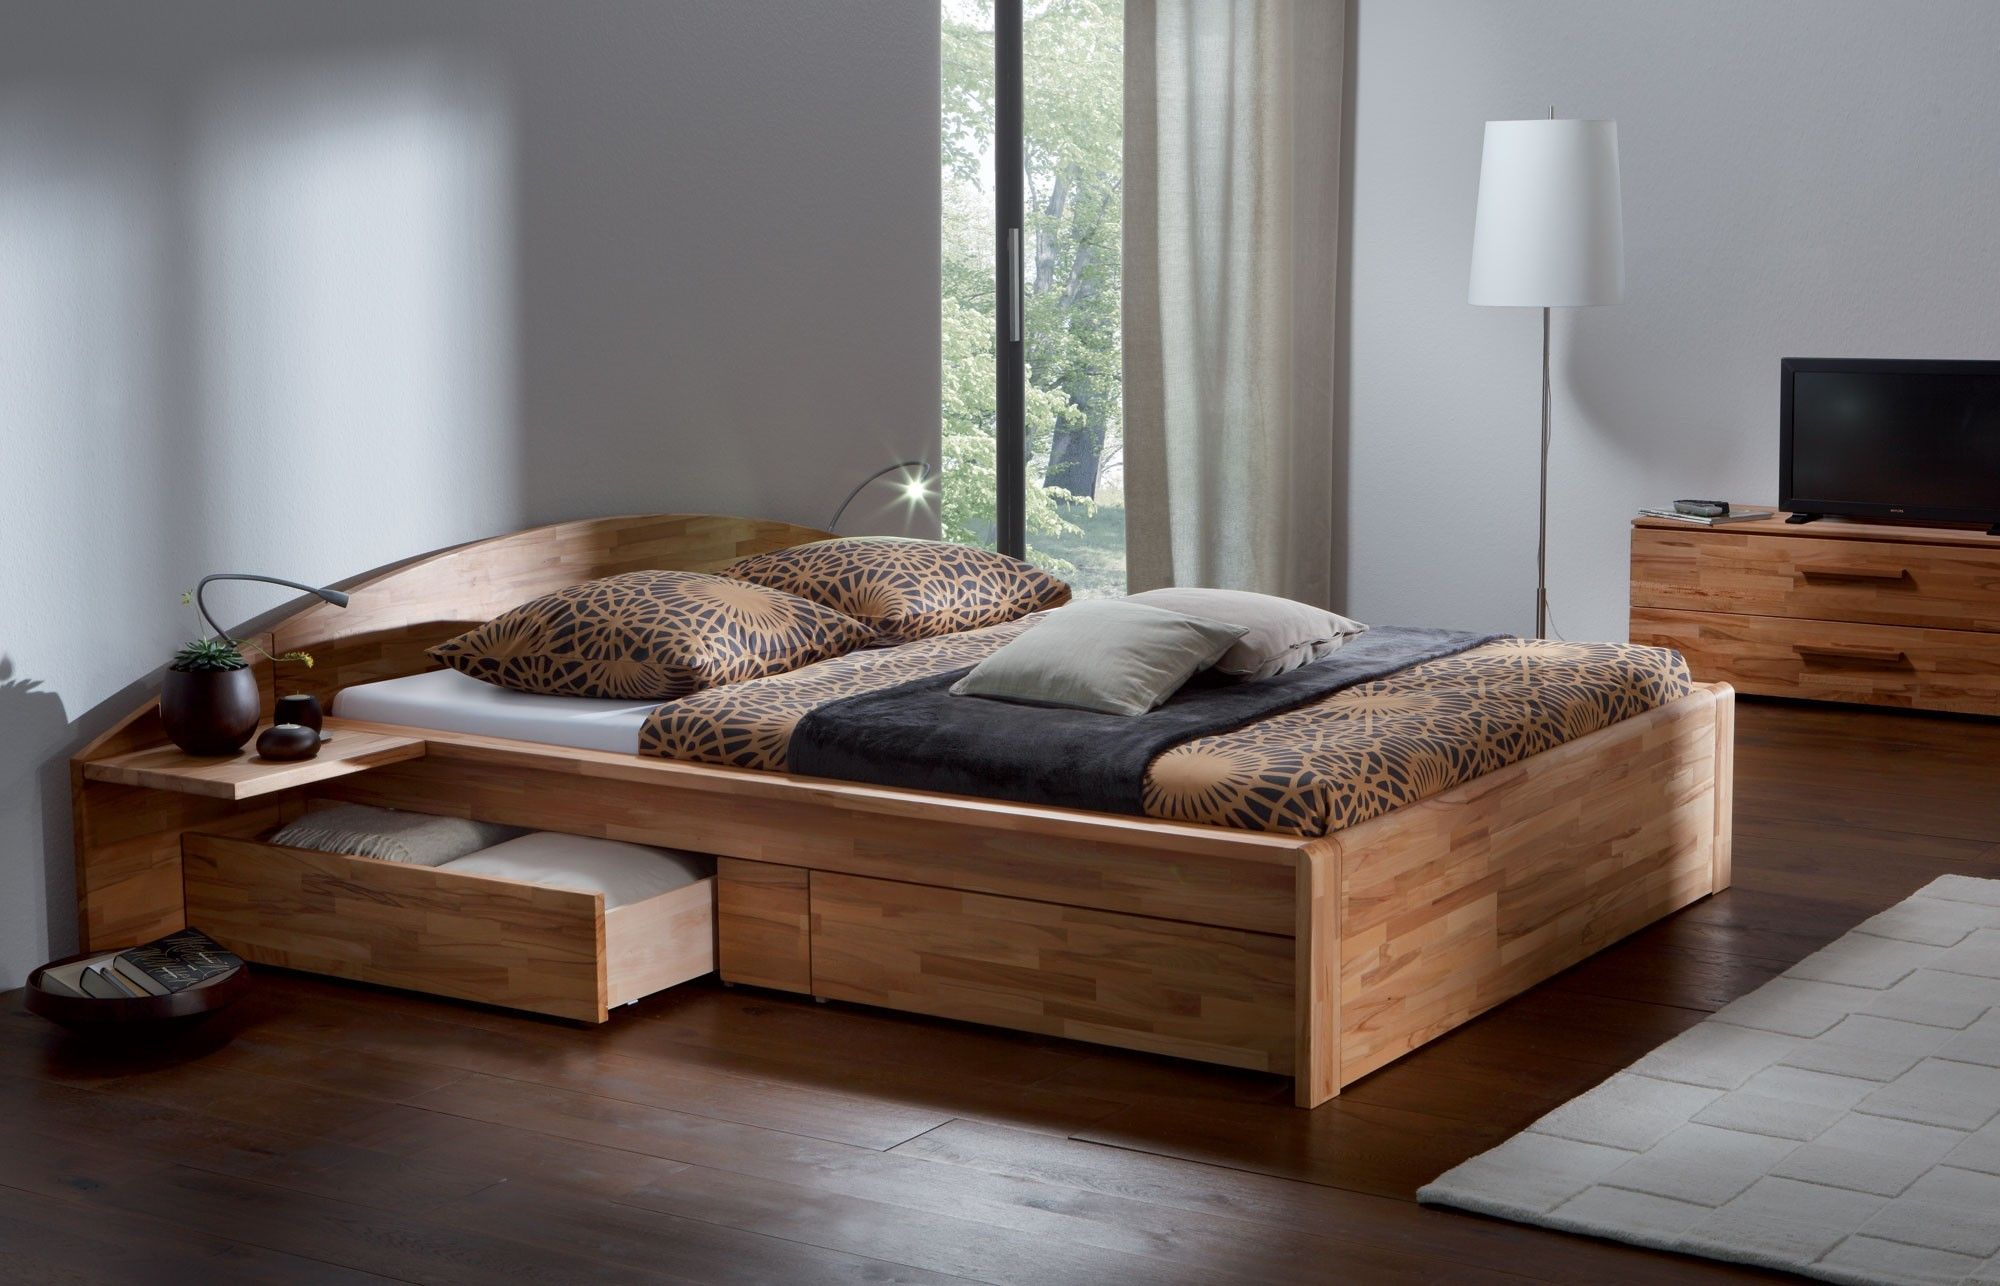 Awesome Low Profile Full Bed Frame 18 On Home Designing Inspiration with Low Pro…